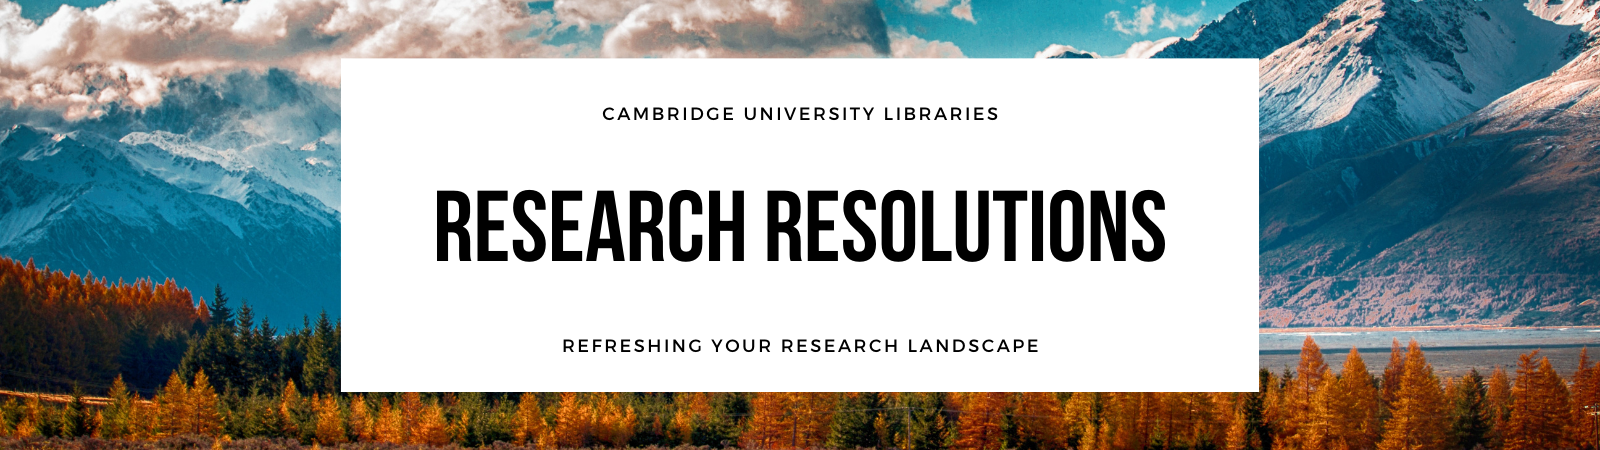 Research Resolutions banner